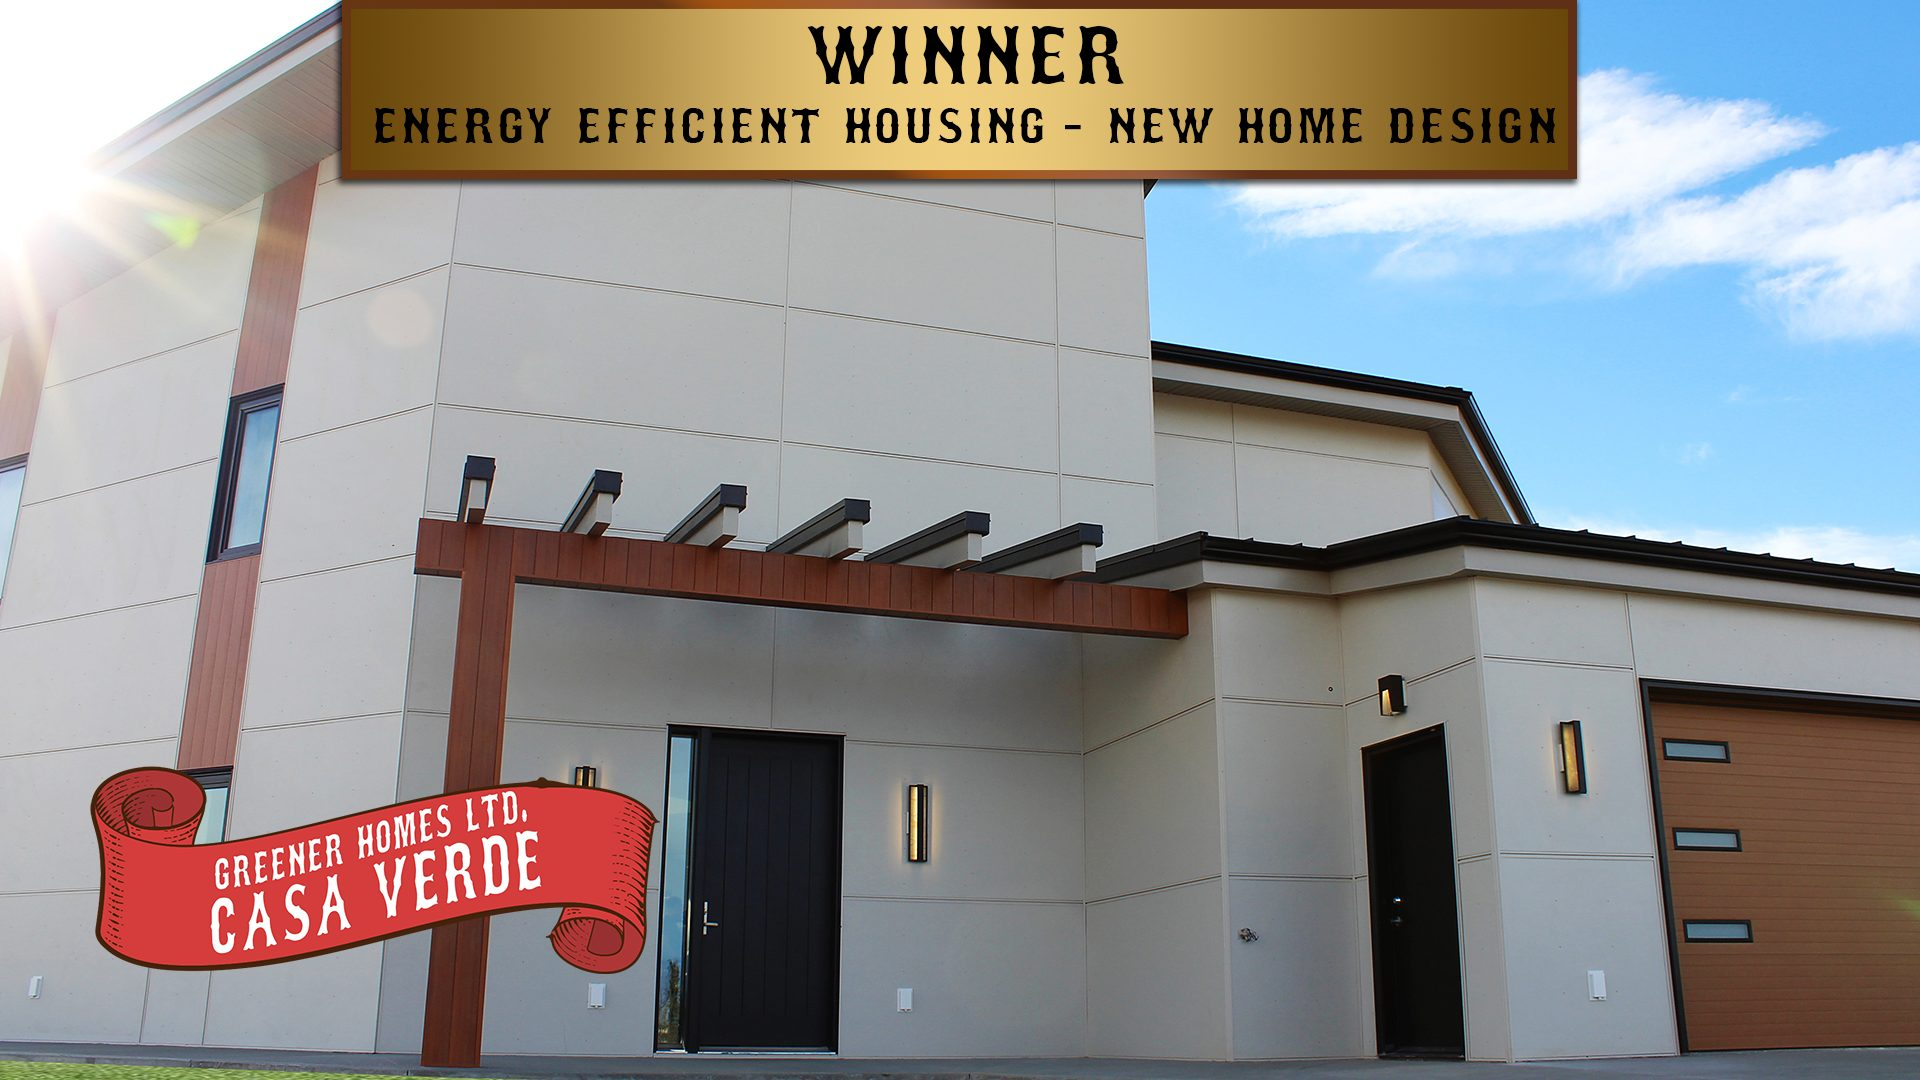 WIN_EnergyEfficientHousing